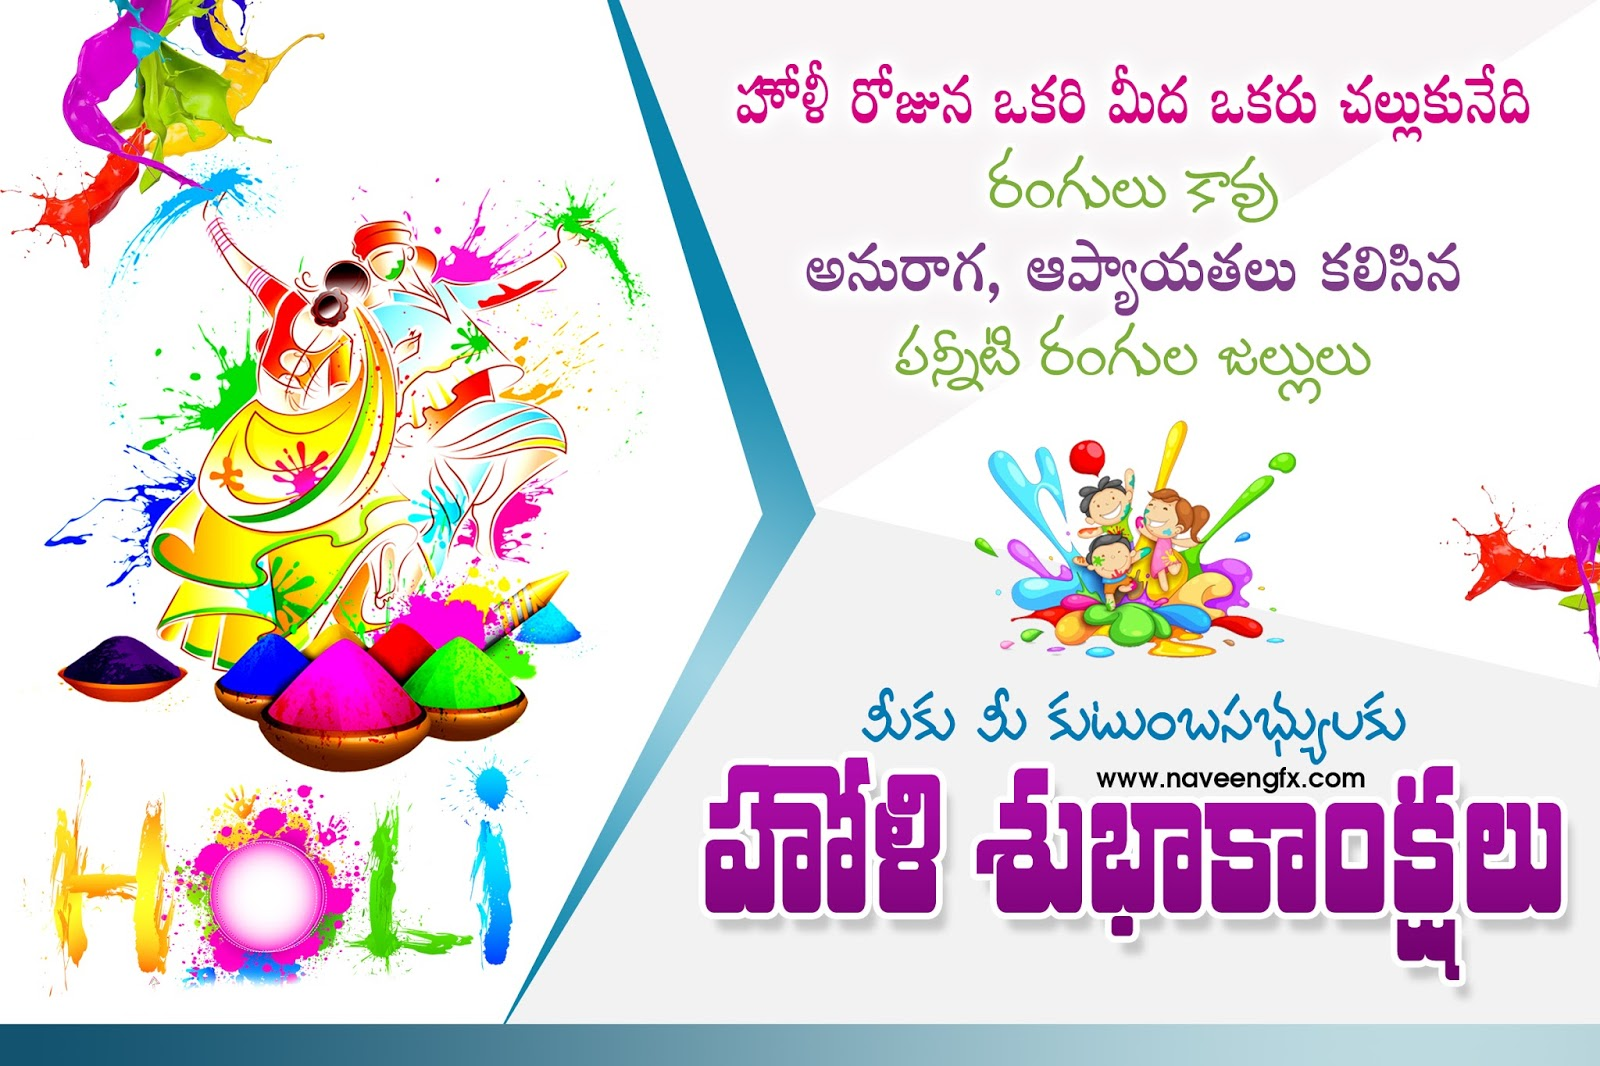 Happy holi telugu wishes quotes and greetings hd images naveengfx happy holi telugu wishes quotes greetings wallpapers images kristyandbryce Image collections